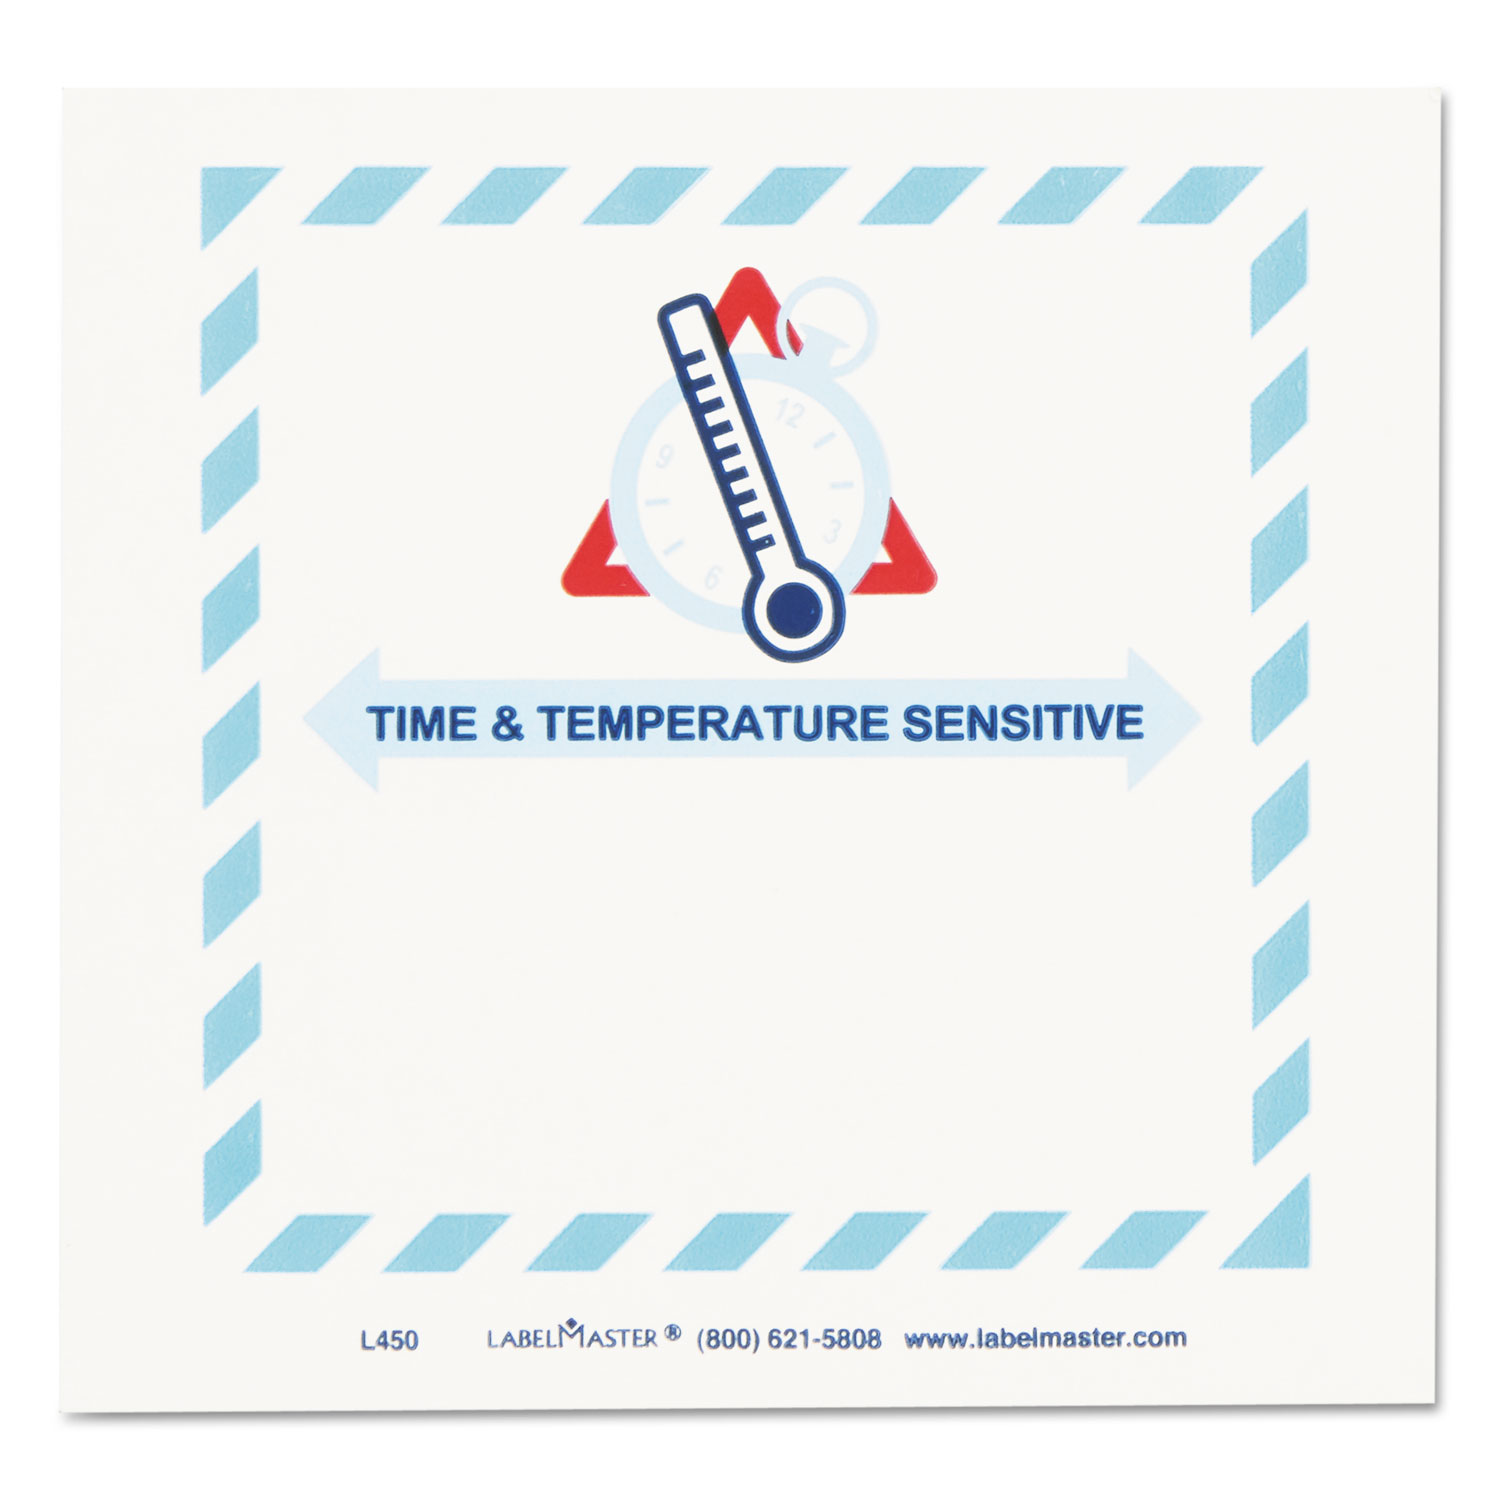 Shipping and Handling Self-Adhesive Labels, TIME and TEMPERATURE SENSITIVE, 5.5 x 5, Blue/Gray/Red/White, 500/Roll